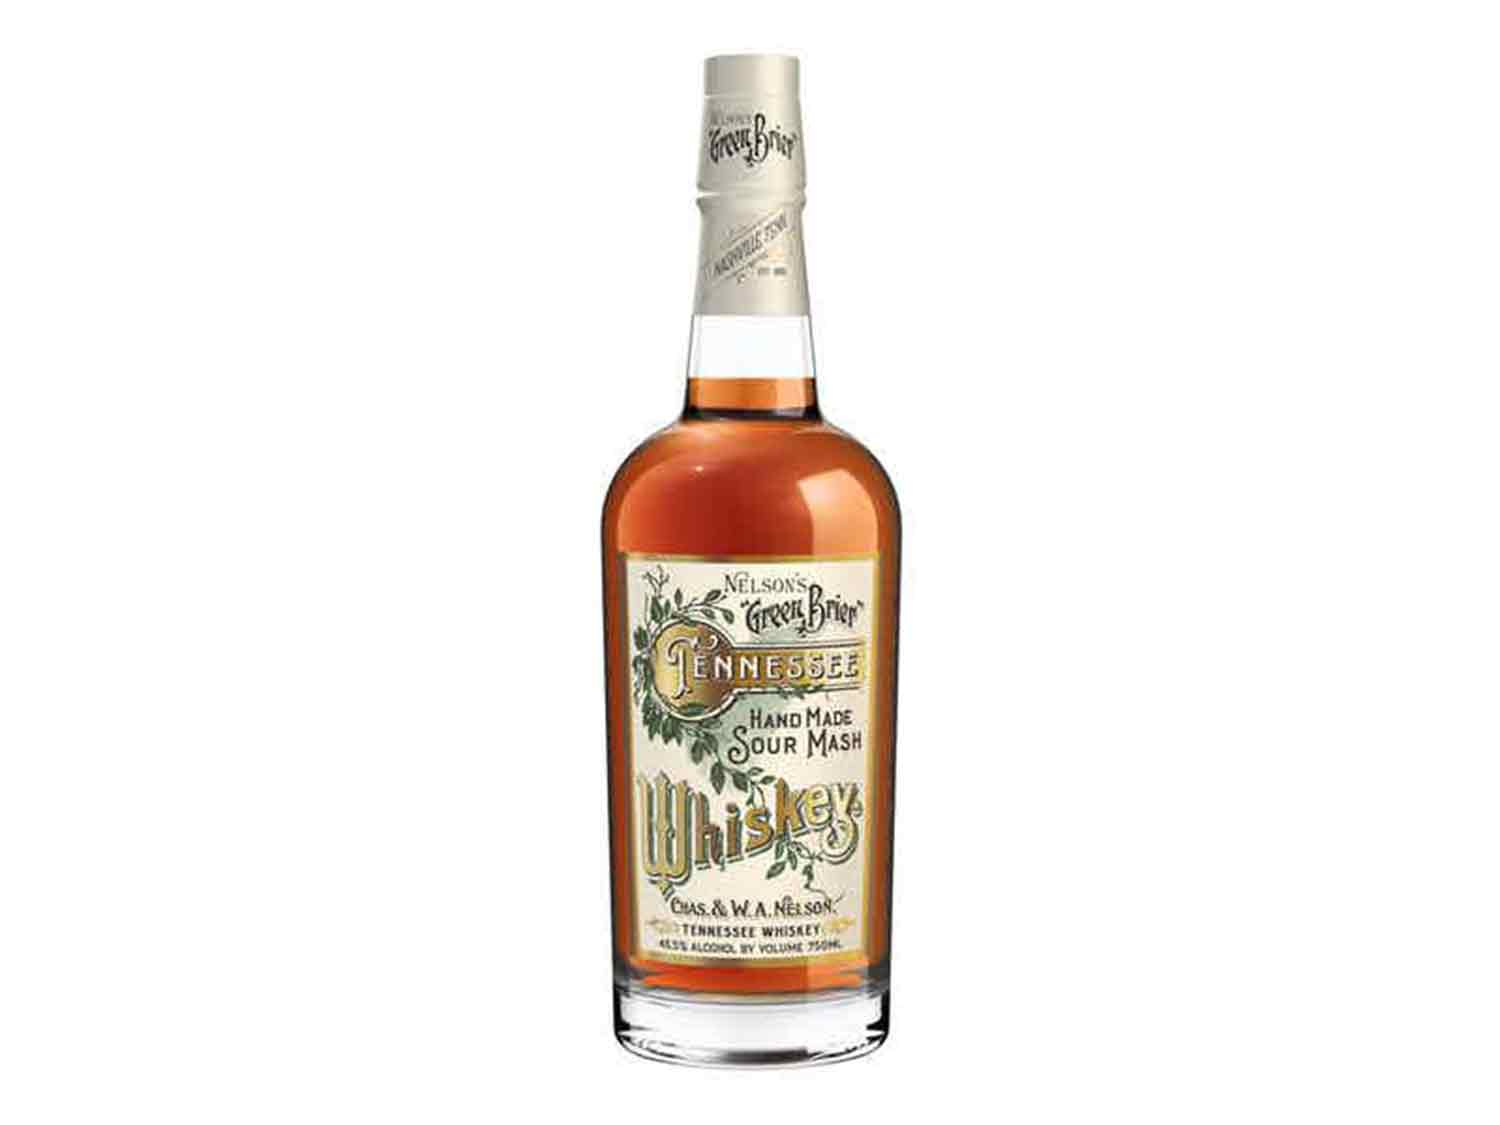 Tennessee Whiskey: Nelson's Green Brier Tennessee Whiskey